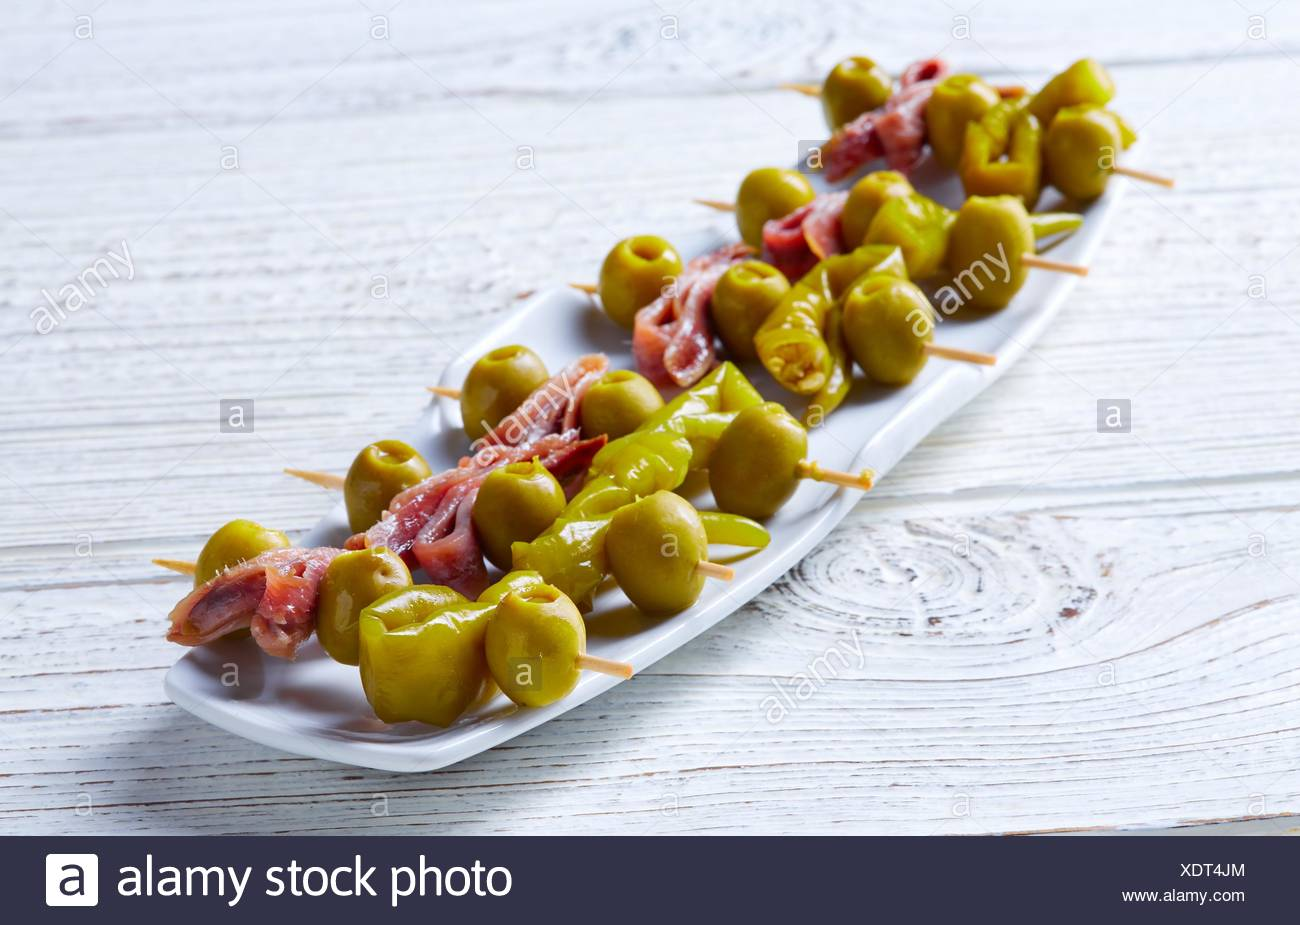 Gilda pinchos with olives and anchovies tapas from Spain. - Stock Image